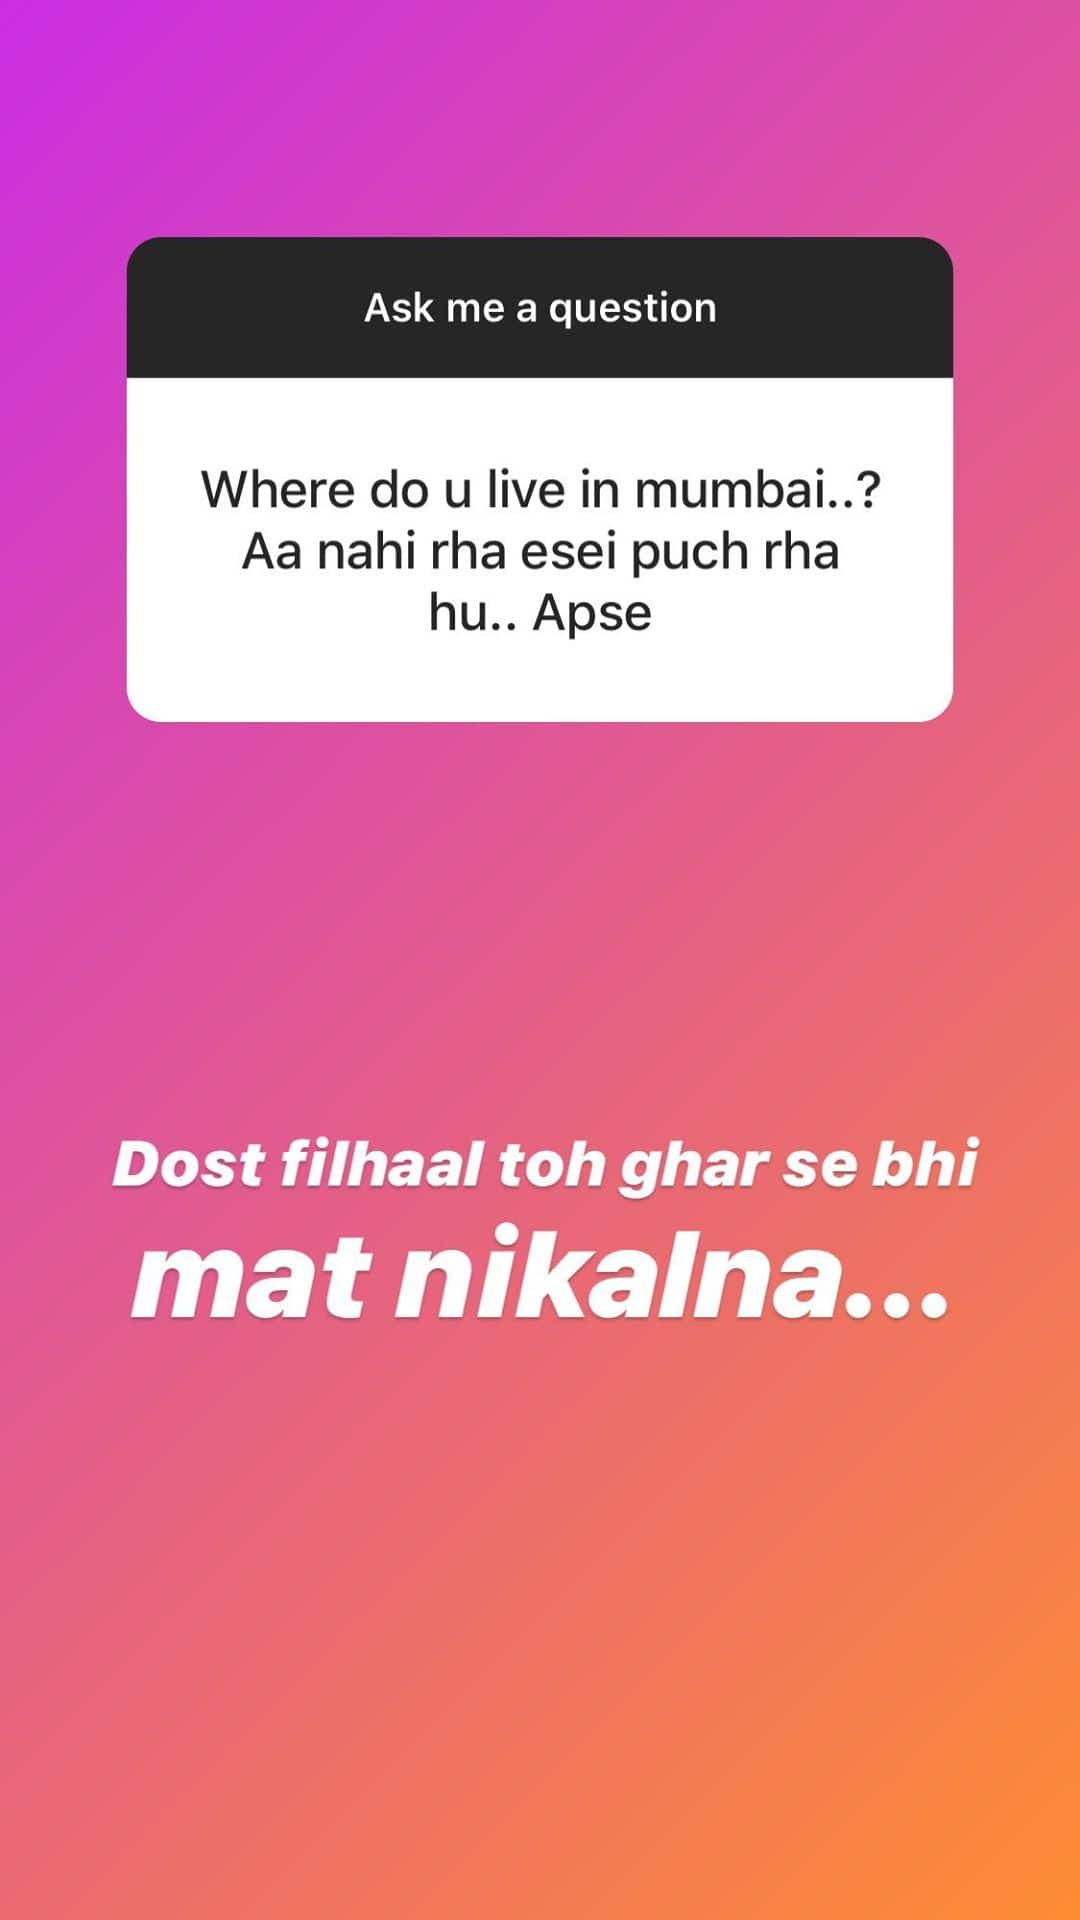 Fan Asks Vicky Kaushal His Secret Actor Replies 'I Haven't Showered Yet Today'; Also Answers A Fan Asking For His Address